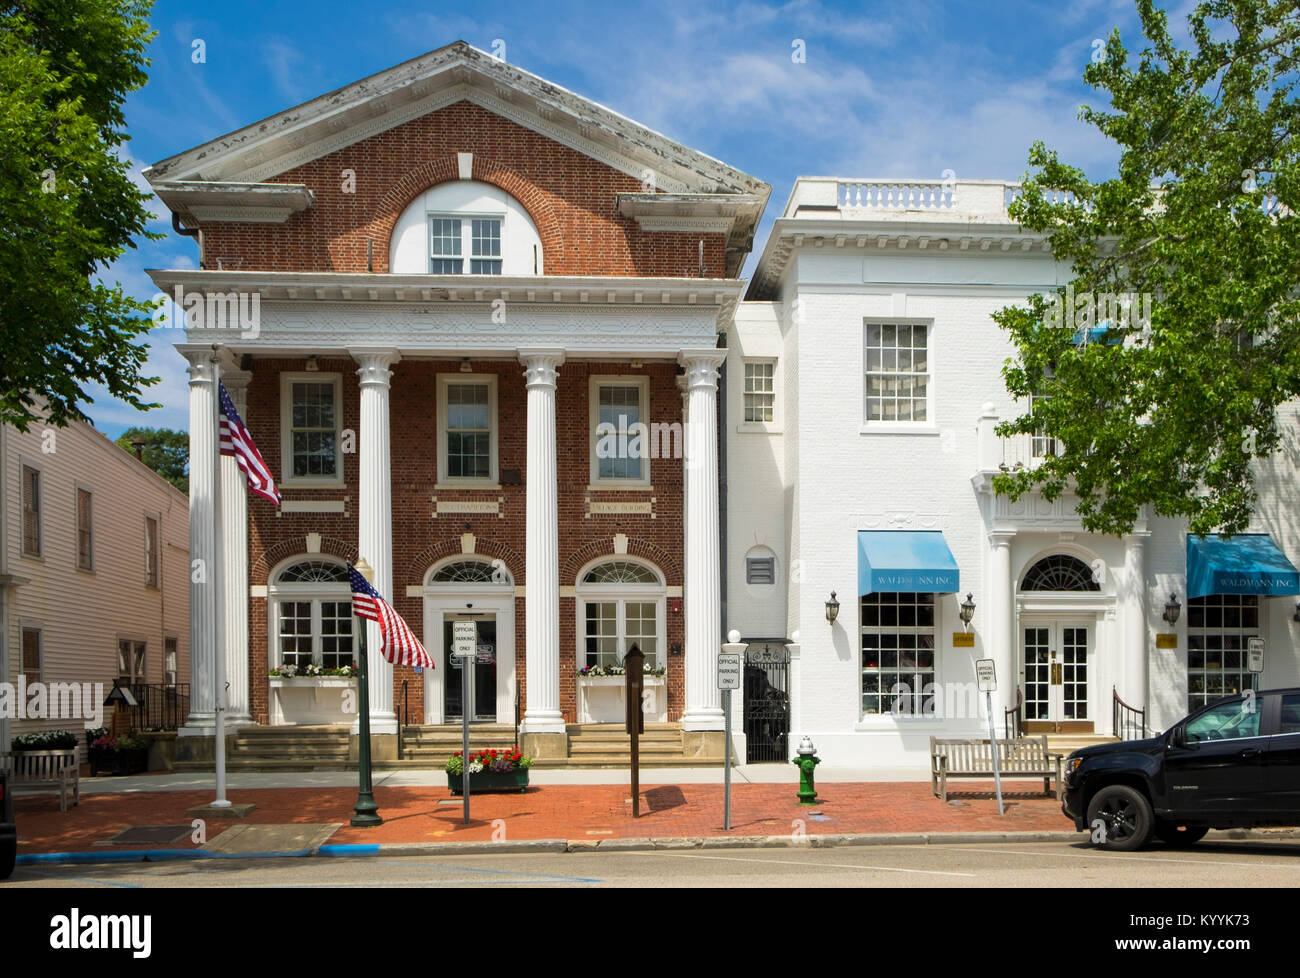 Southampton Village Hall, Main Street, Southampton, The Hamptons, Long Island, New York, USA - Stock Image